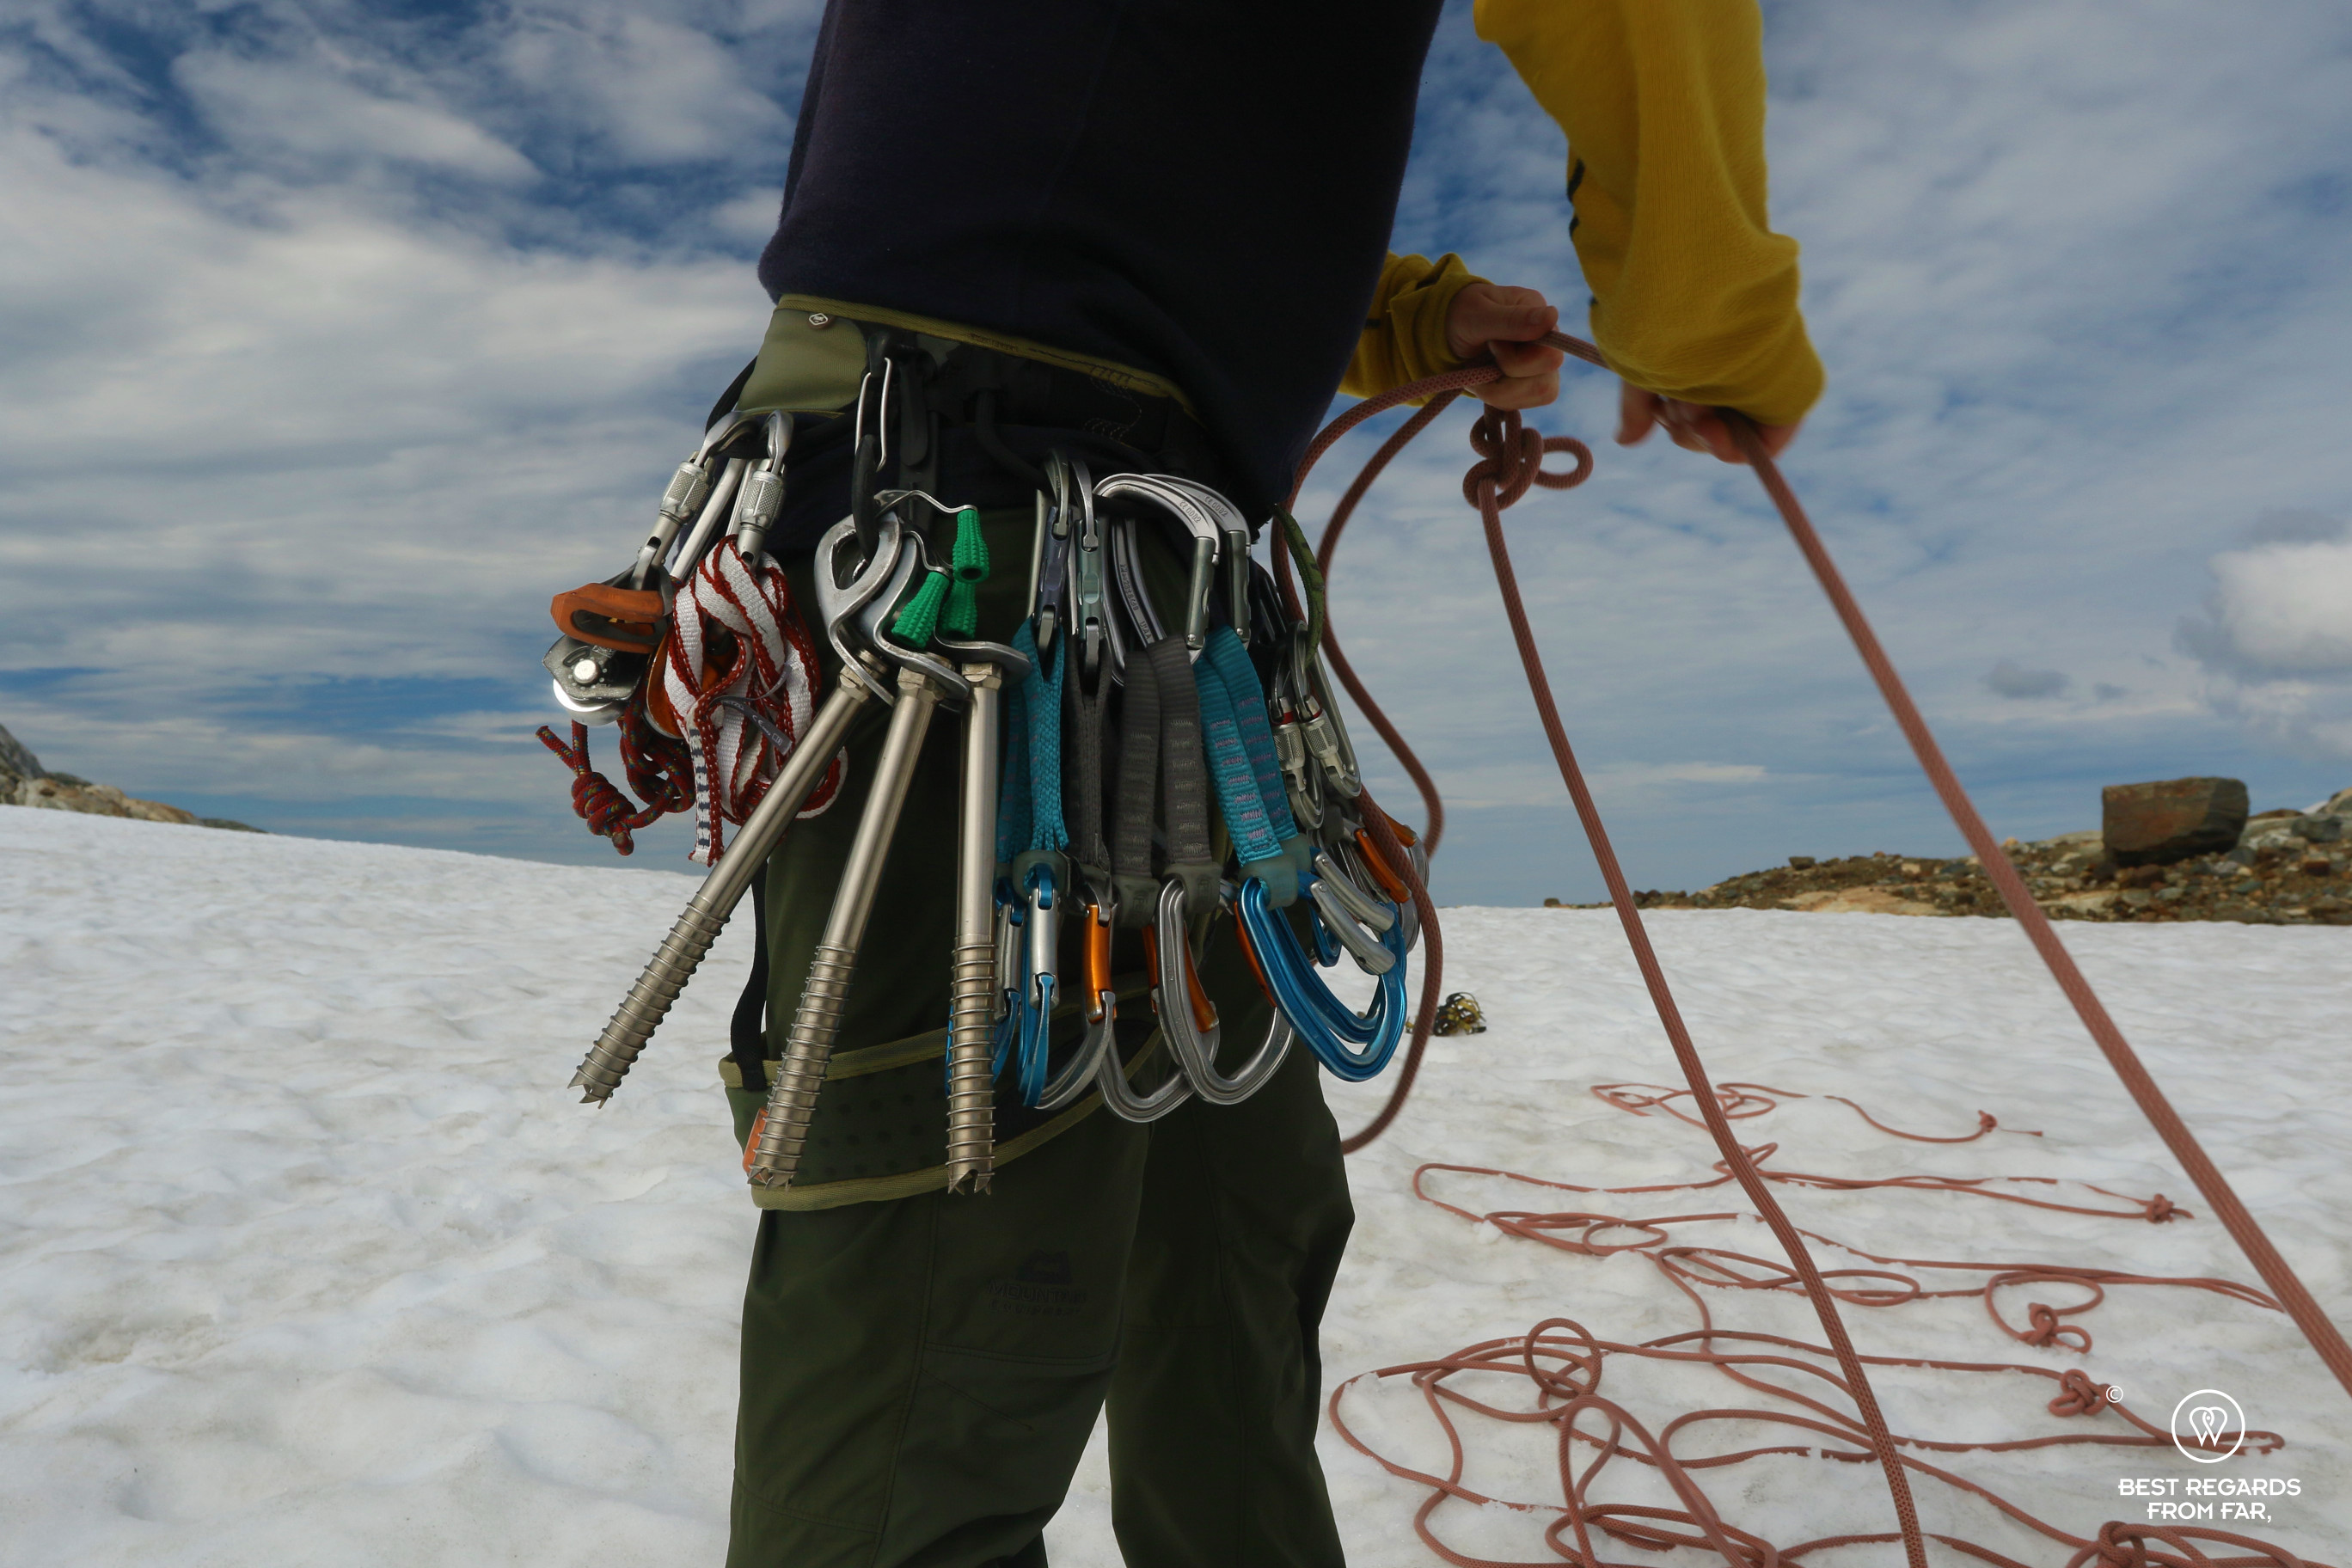 Gear of the guide while he is preparing the rope for the glacier hike